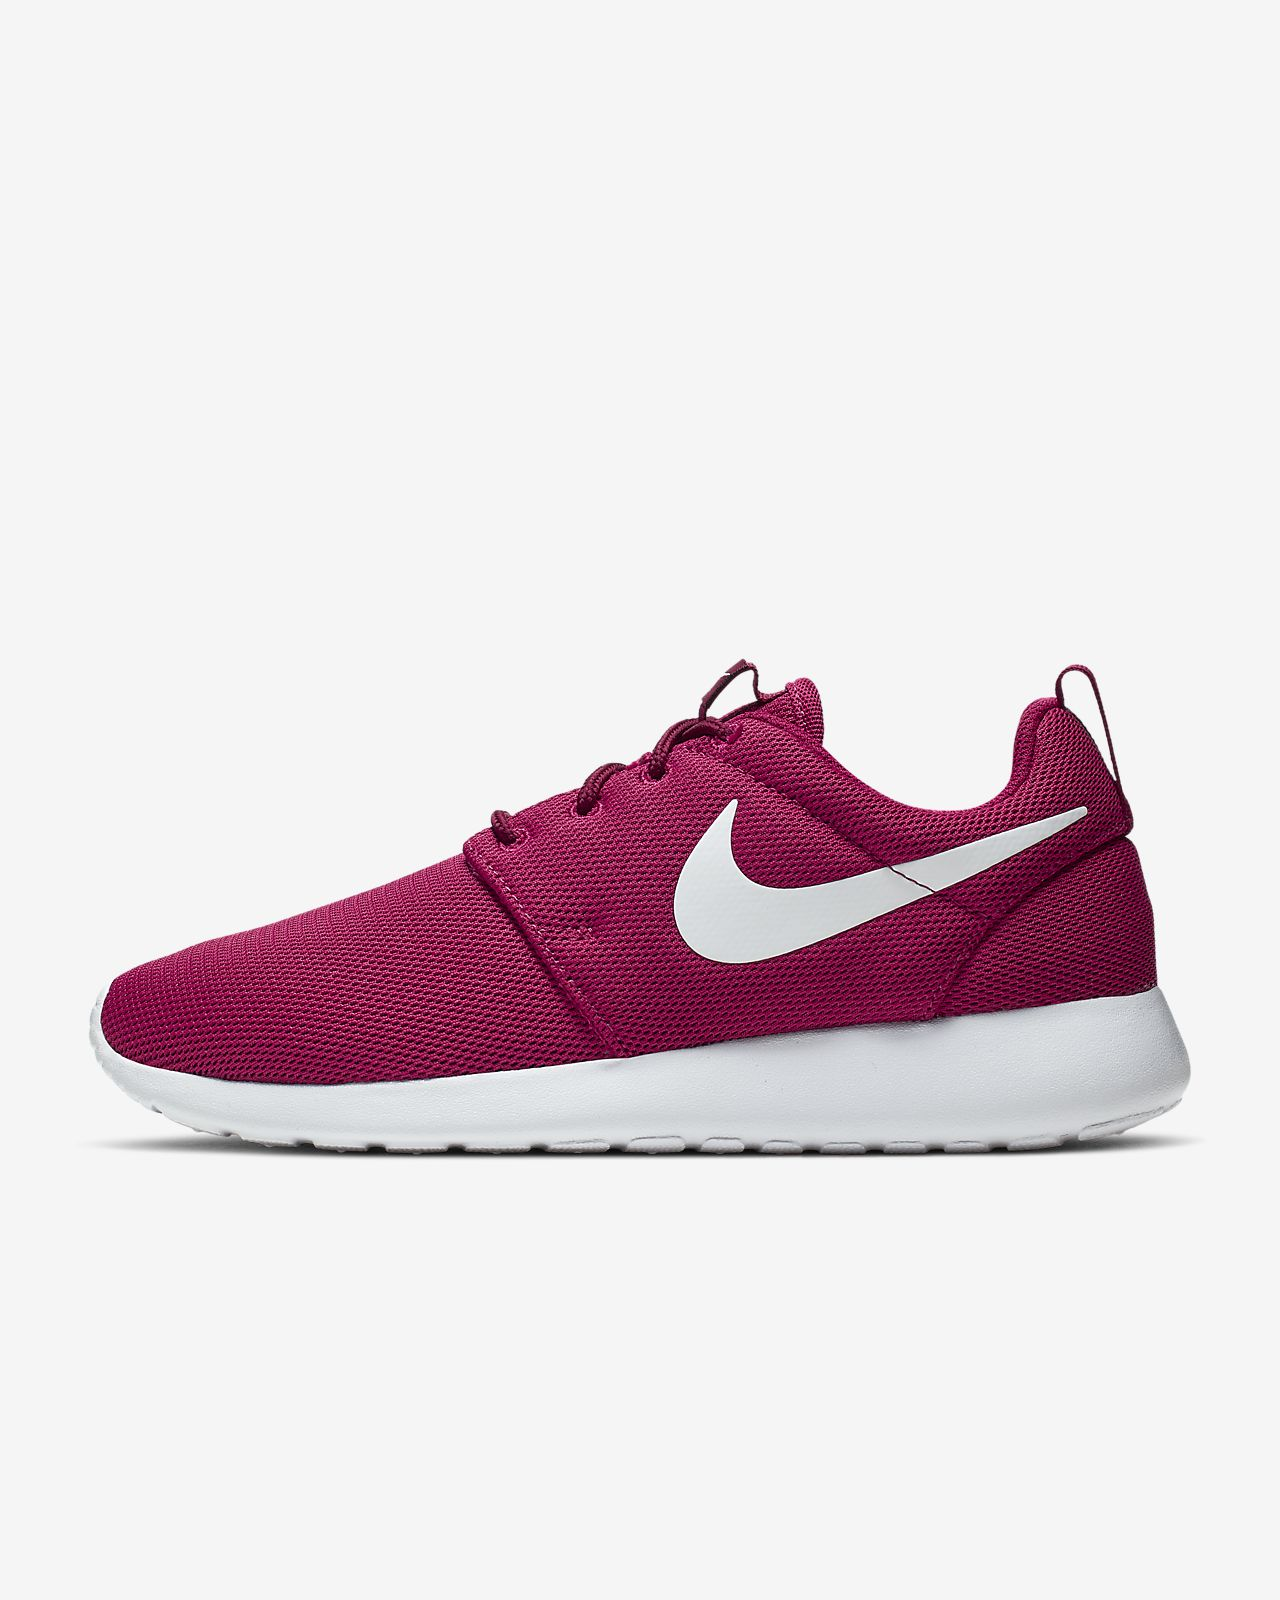 the latest 72b36 1fa75 Nike Roshe One Women's Shoe